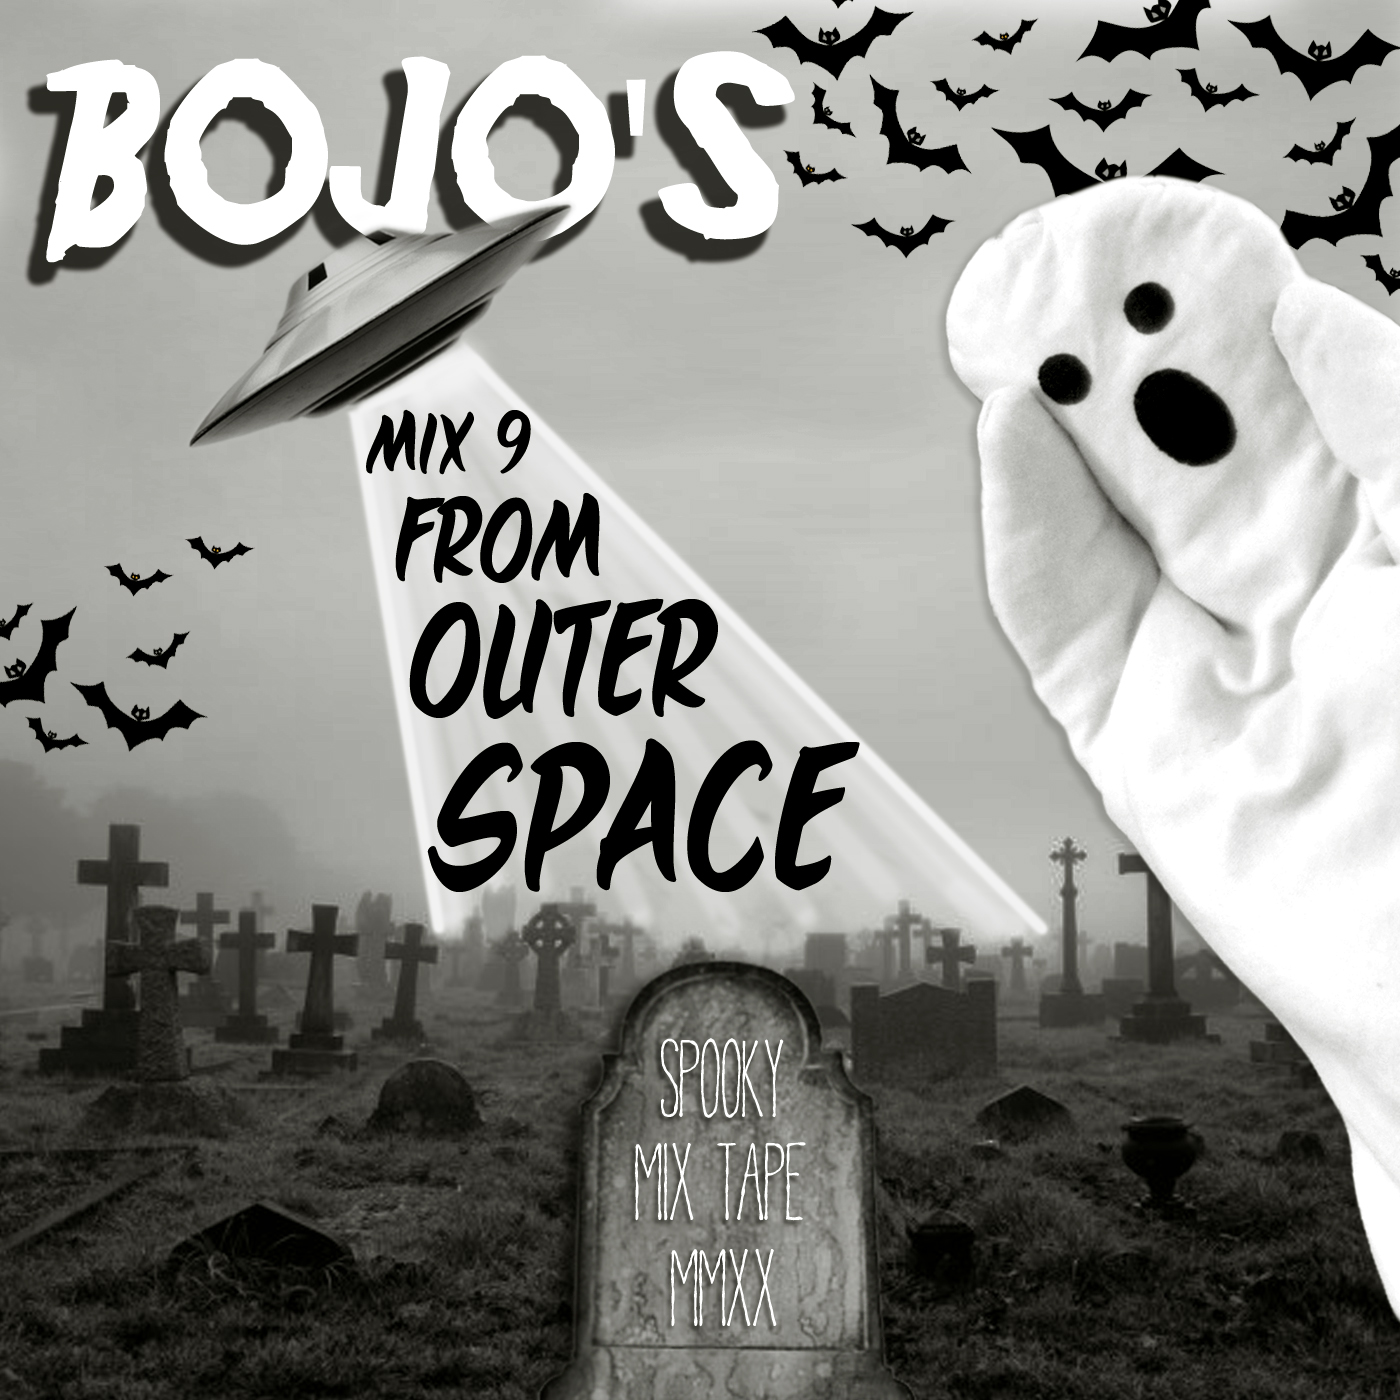 BoJo's Mix 9 from Outer Space